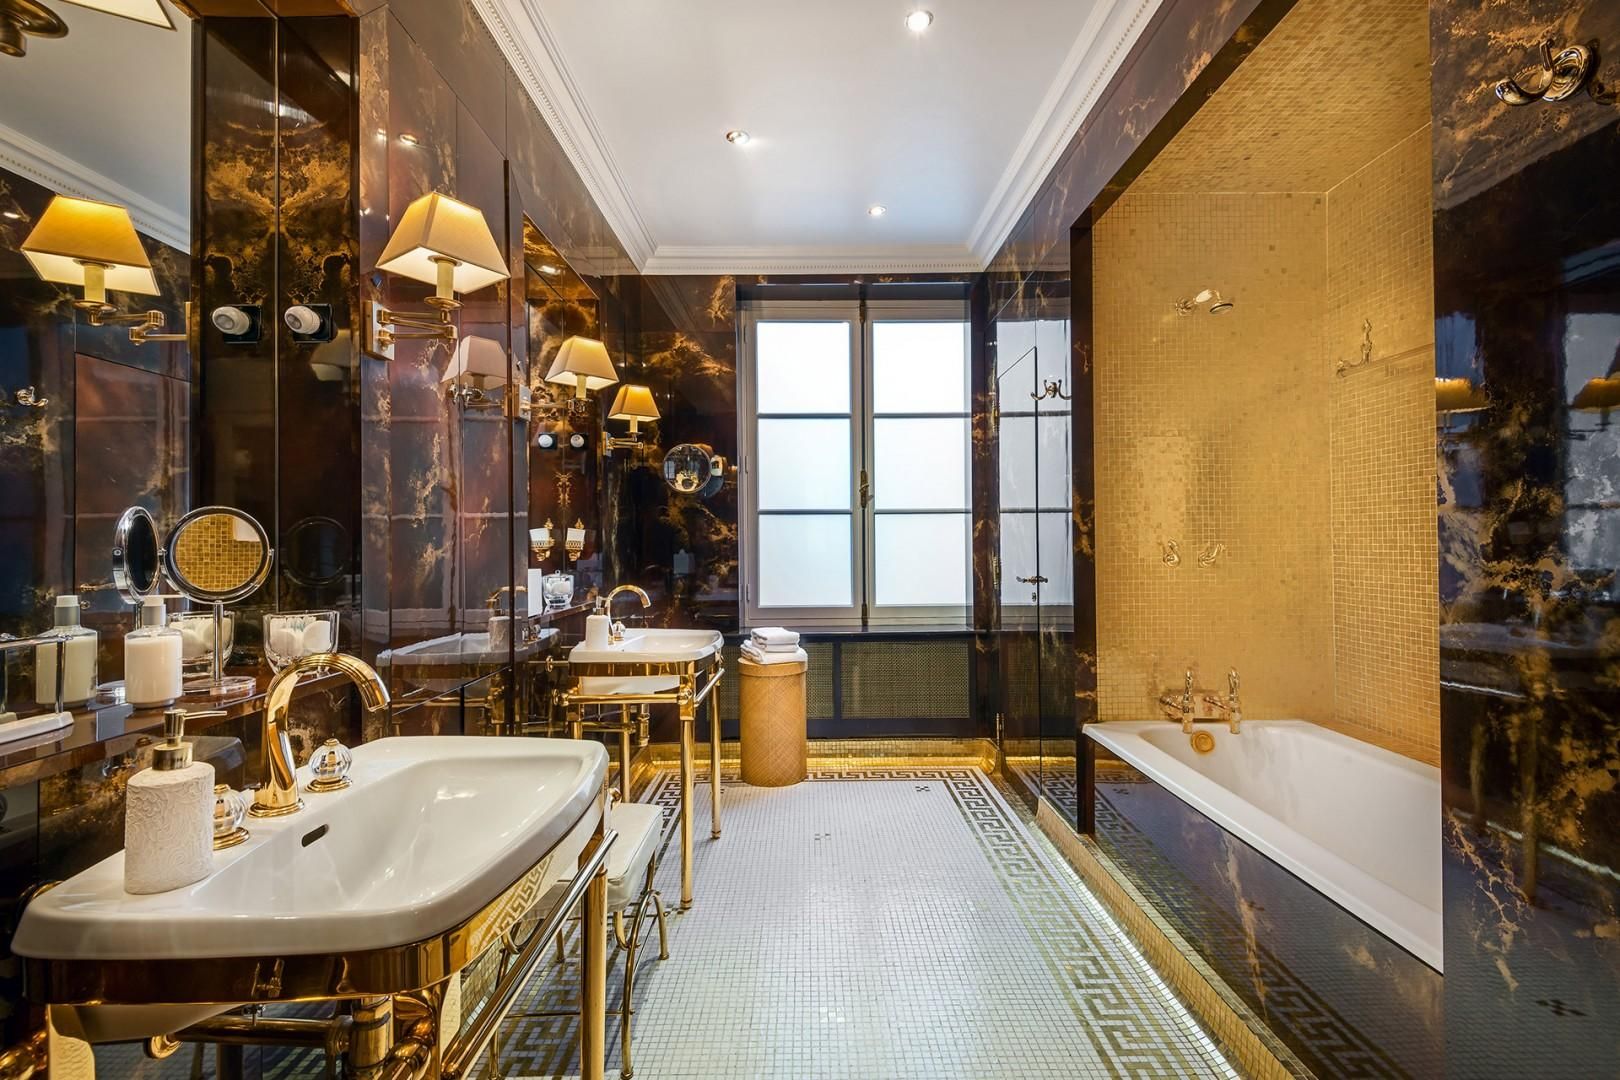 Bathroom 1 is fit for a king or queen!